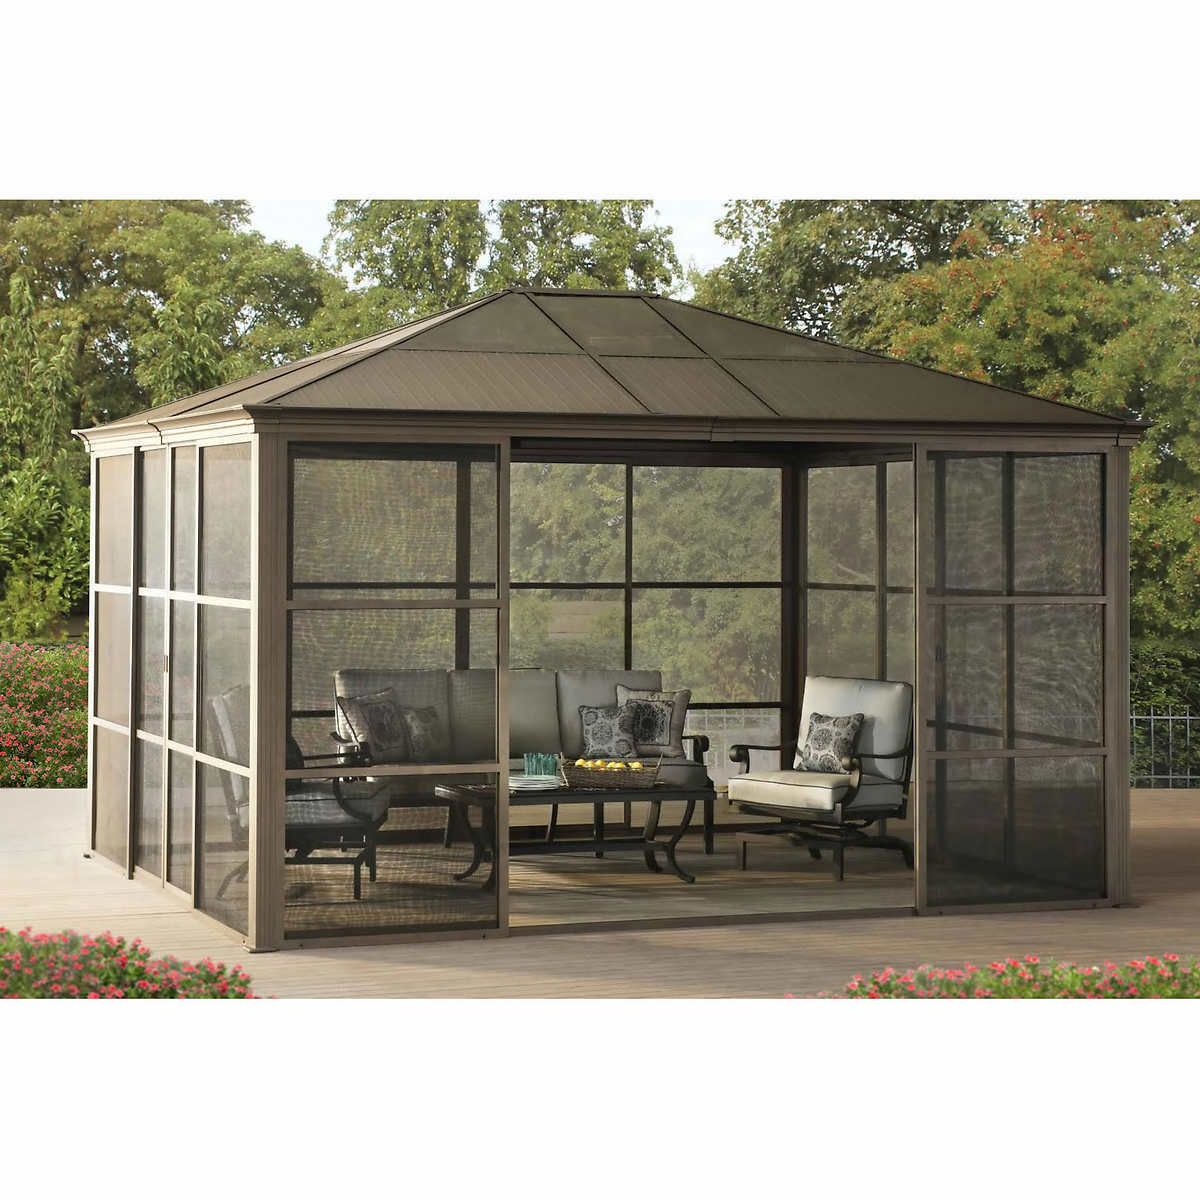 12 X 14 Hardtop Gazebo Metal Steel Aluminum Roof Post Outdoor For